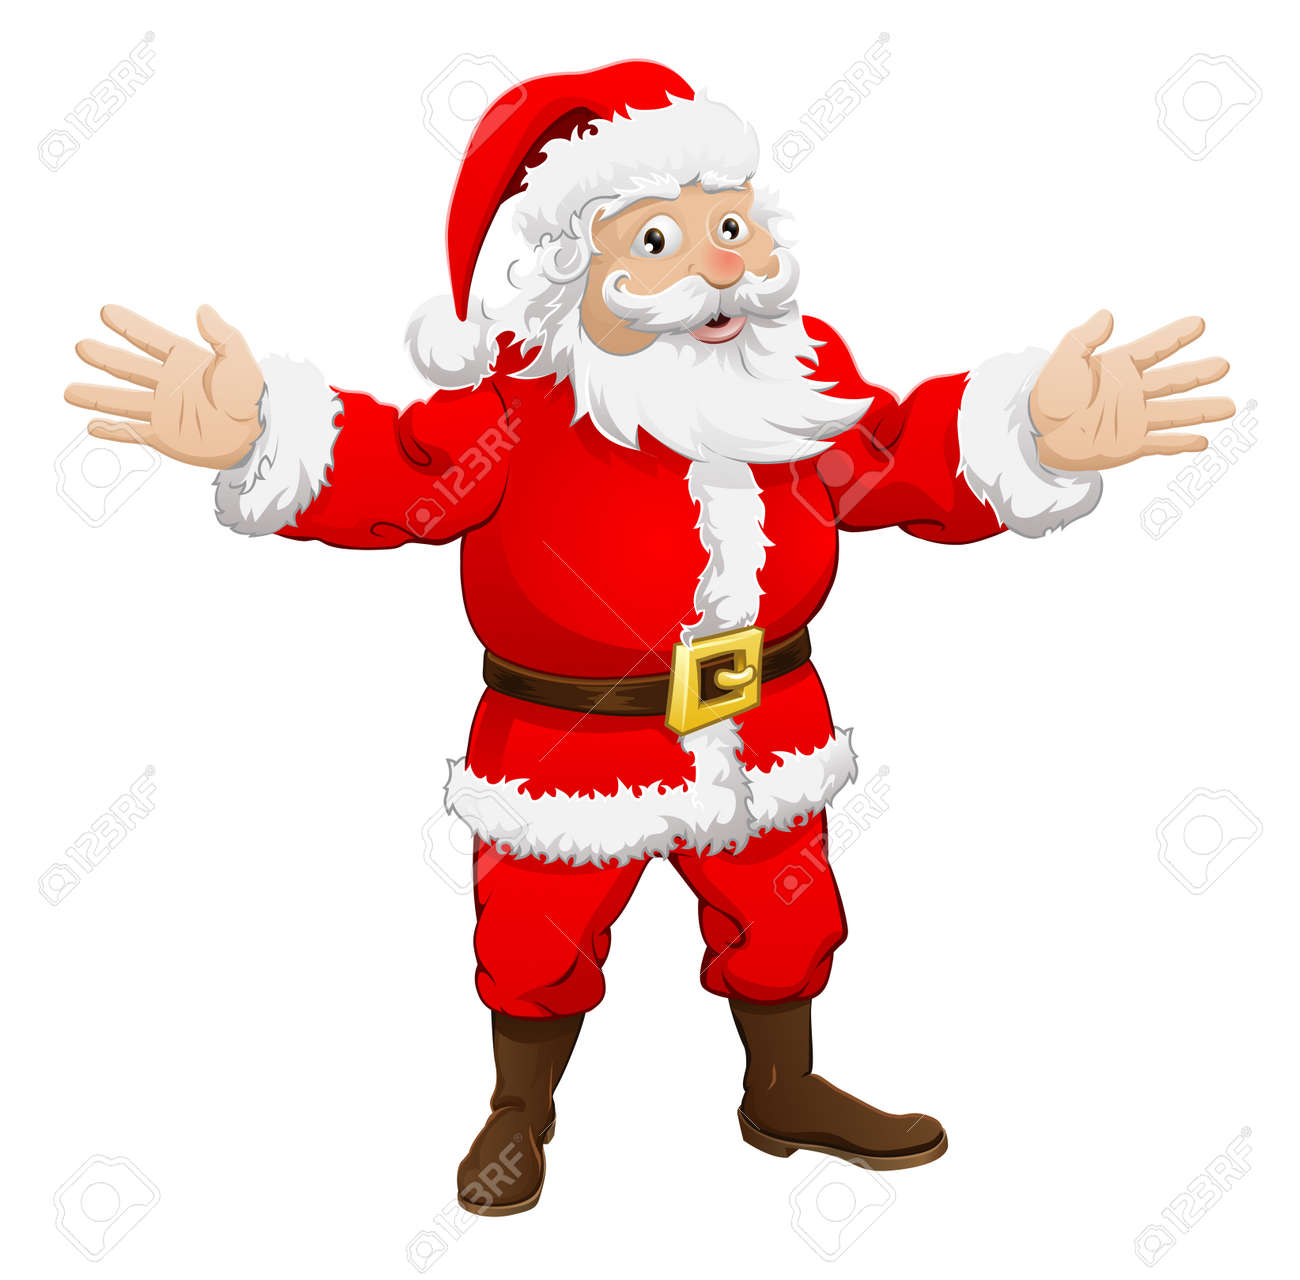 a5adbb91ff34e An Illustration Of A Happy Christmas Santa Claus Royalty Free ...